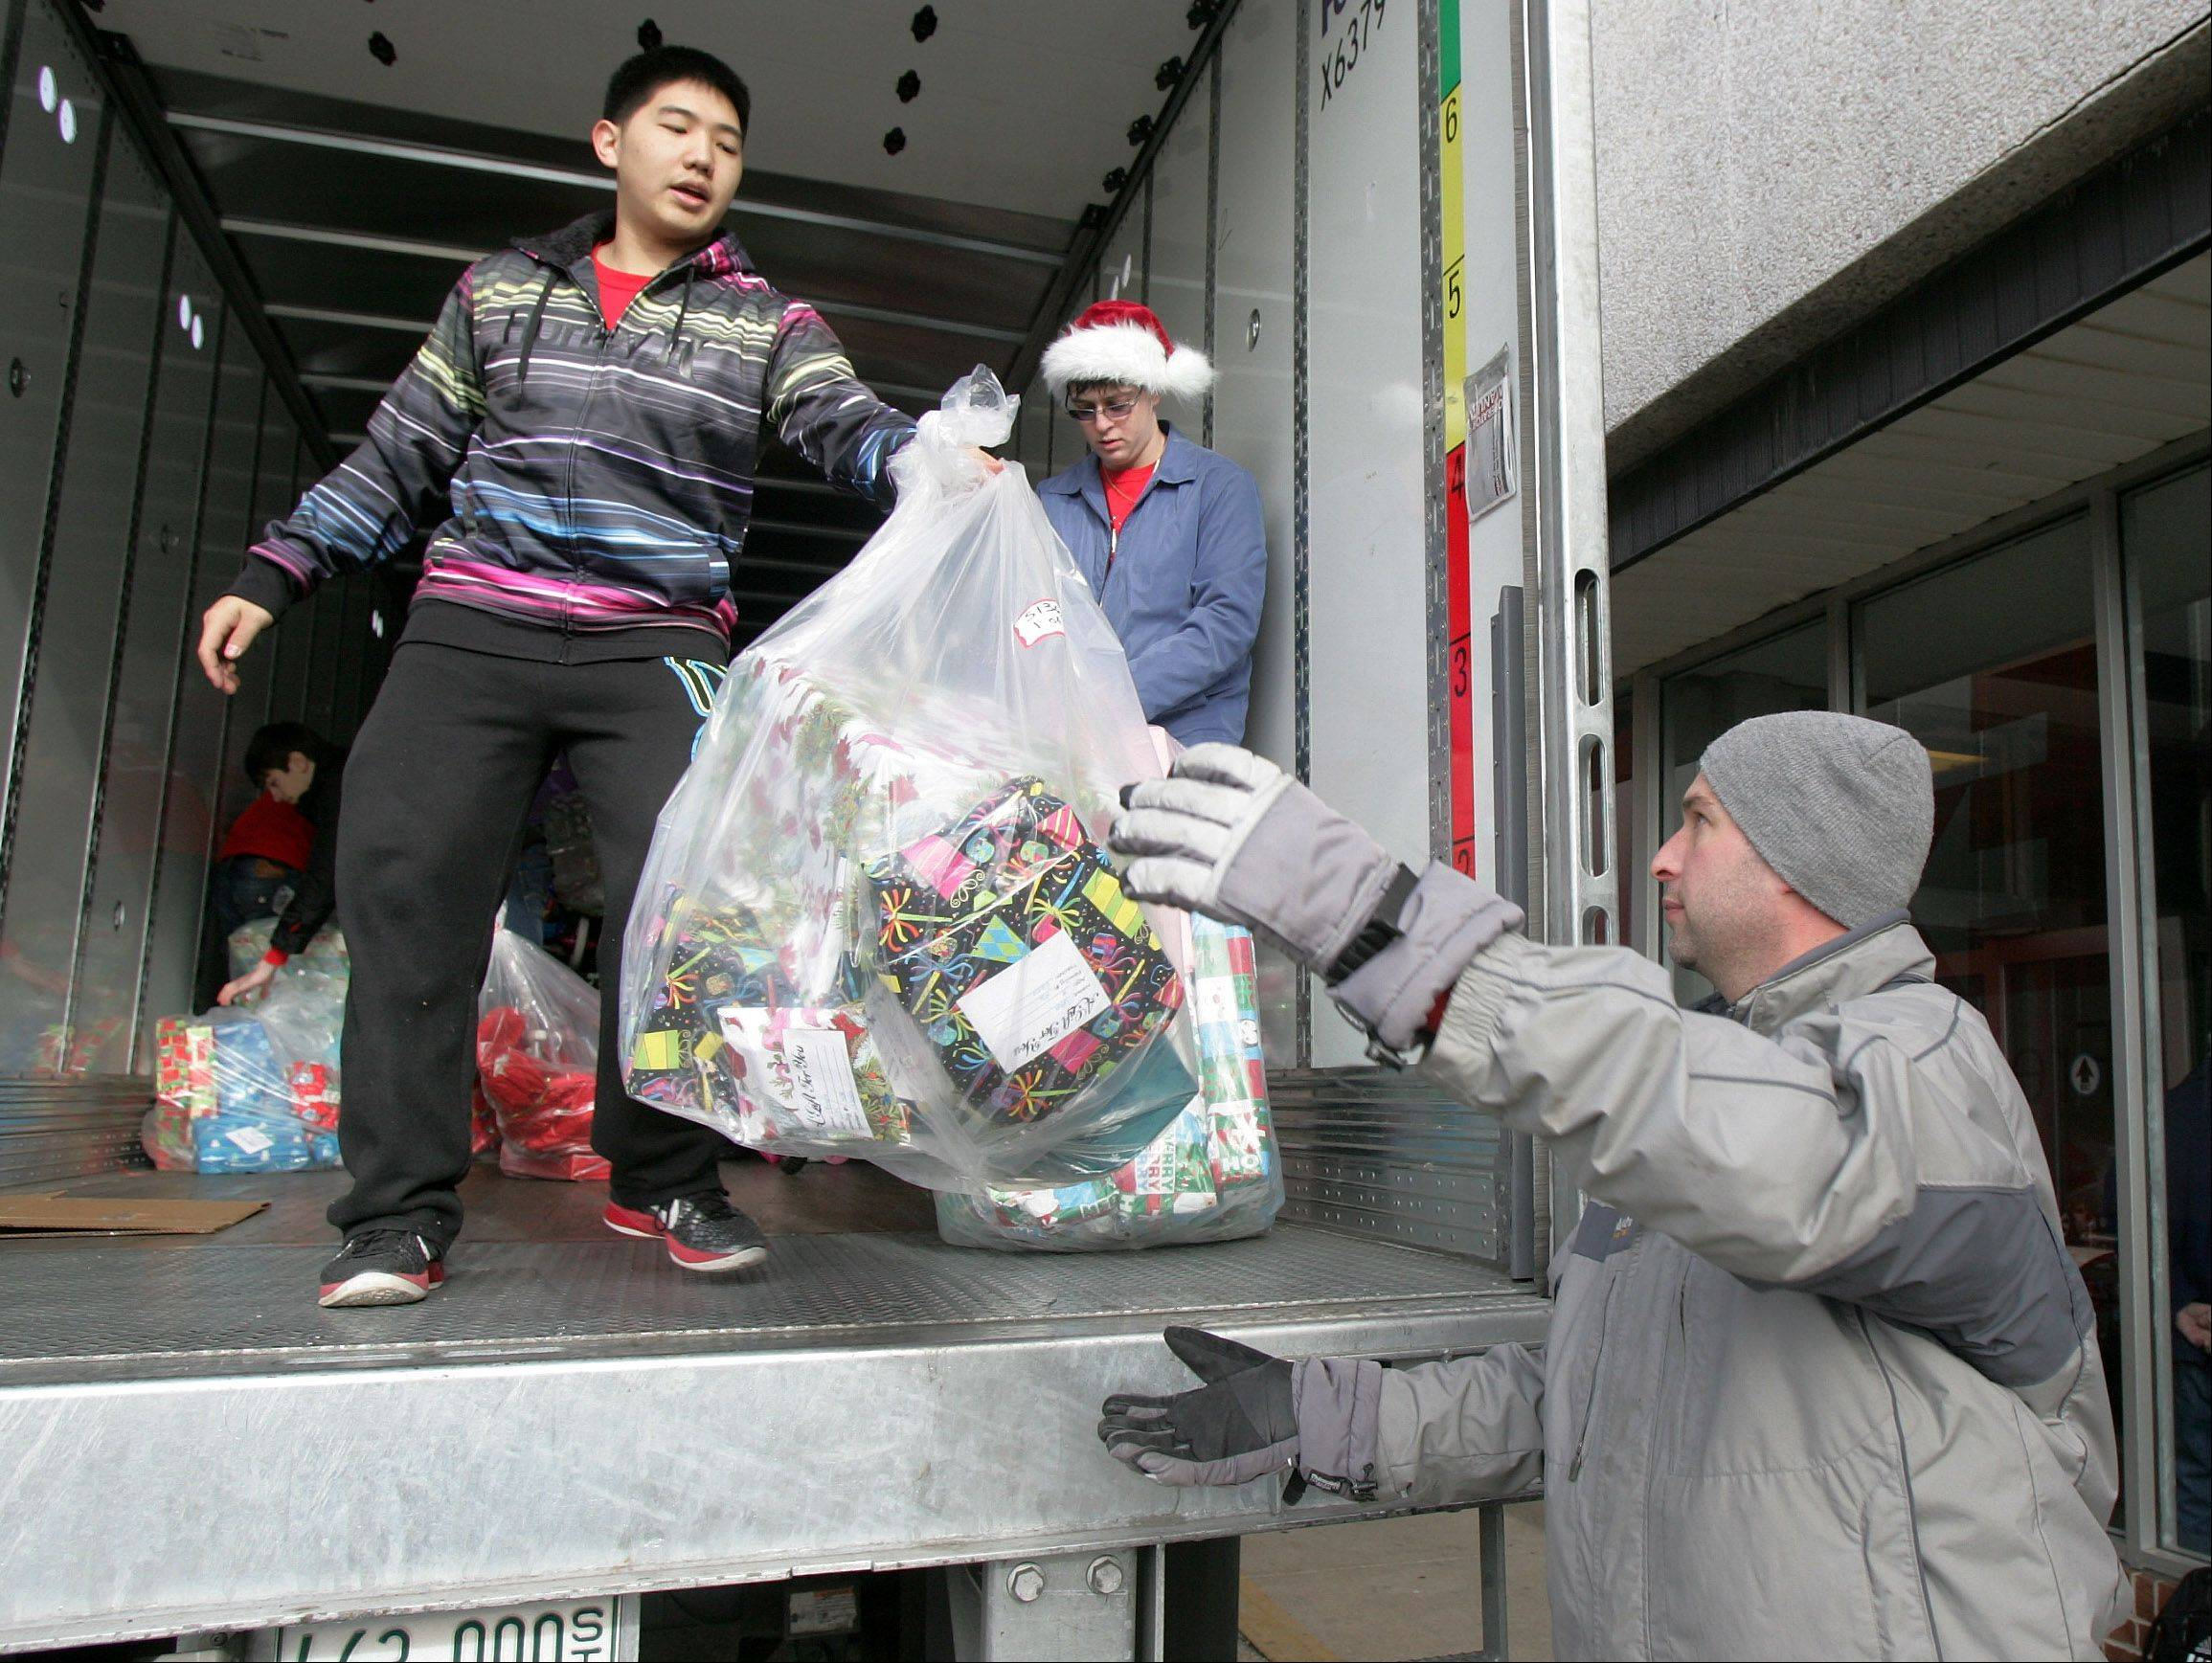 Senior Kevin Xu unloads presents from a truck to Ted Goergen, director of student activities, as Stevenson High School students deliver toys and gifts Wednesday to Catholic Charities' Lake County Adopt-A-Family Christmas Gift Program. The gifts will benefit about 235 families.